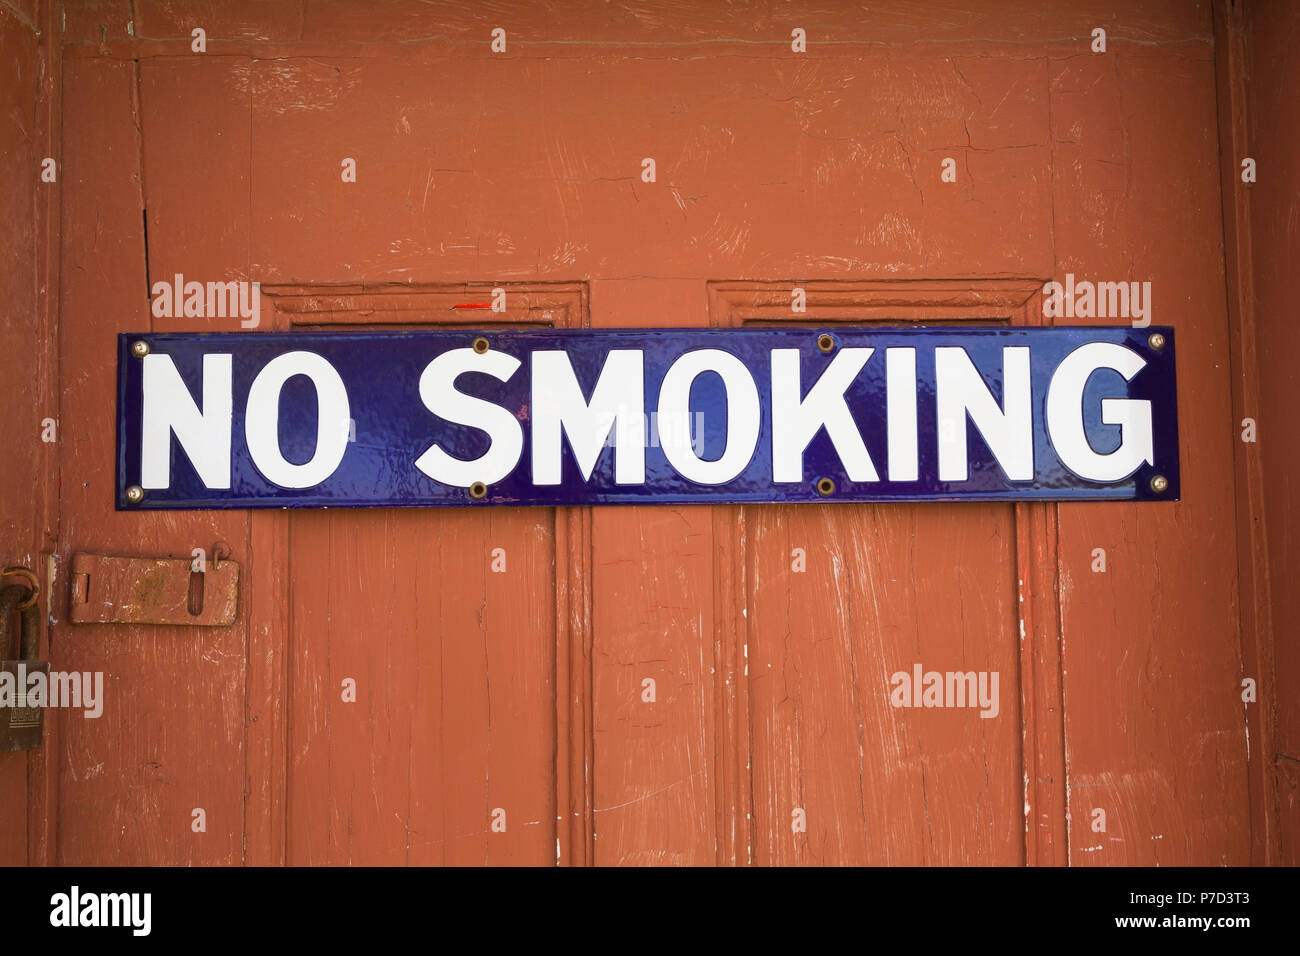 White and blue No Smoking sign on reddish brown wooden entrance door, background image - Stock Image